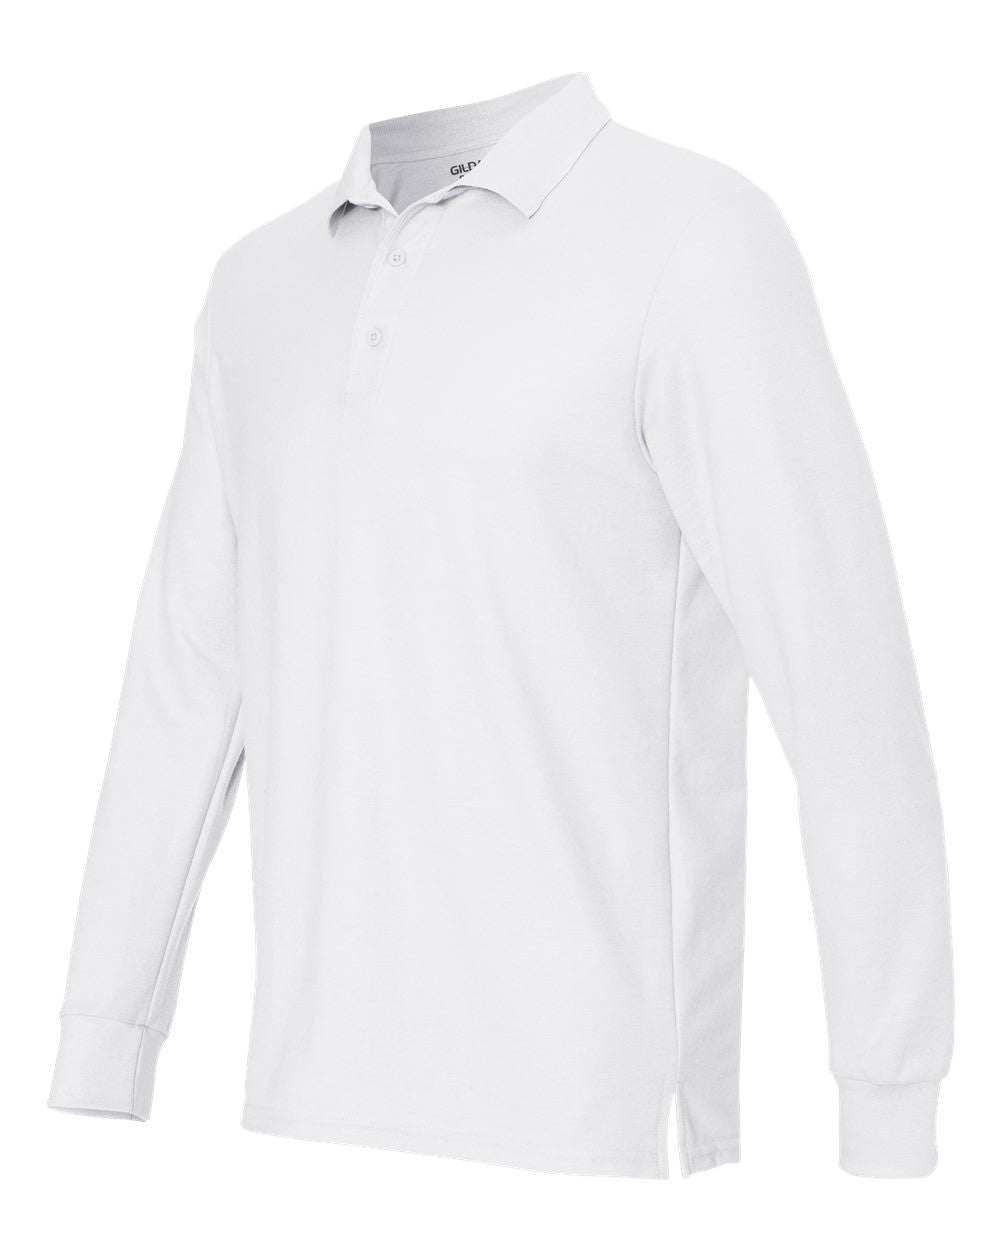 Long sleeve Polos - Double Pique - Discountedrack.com